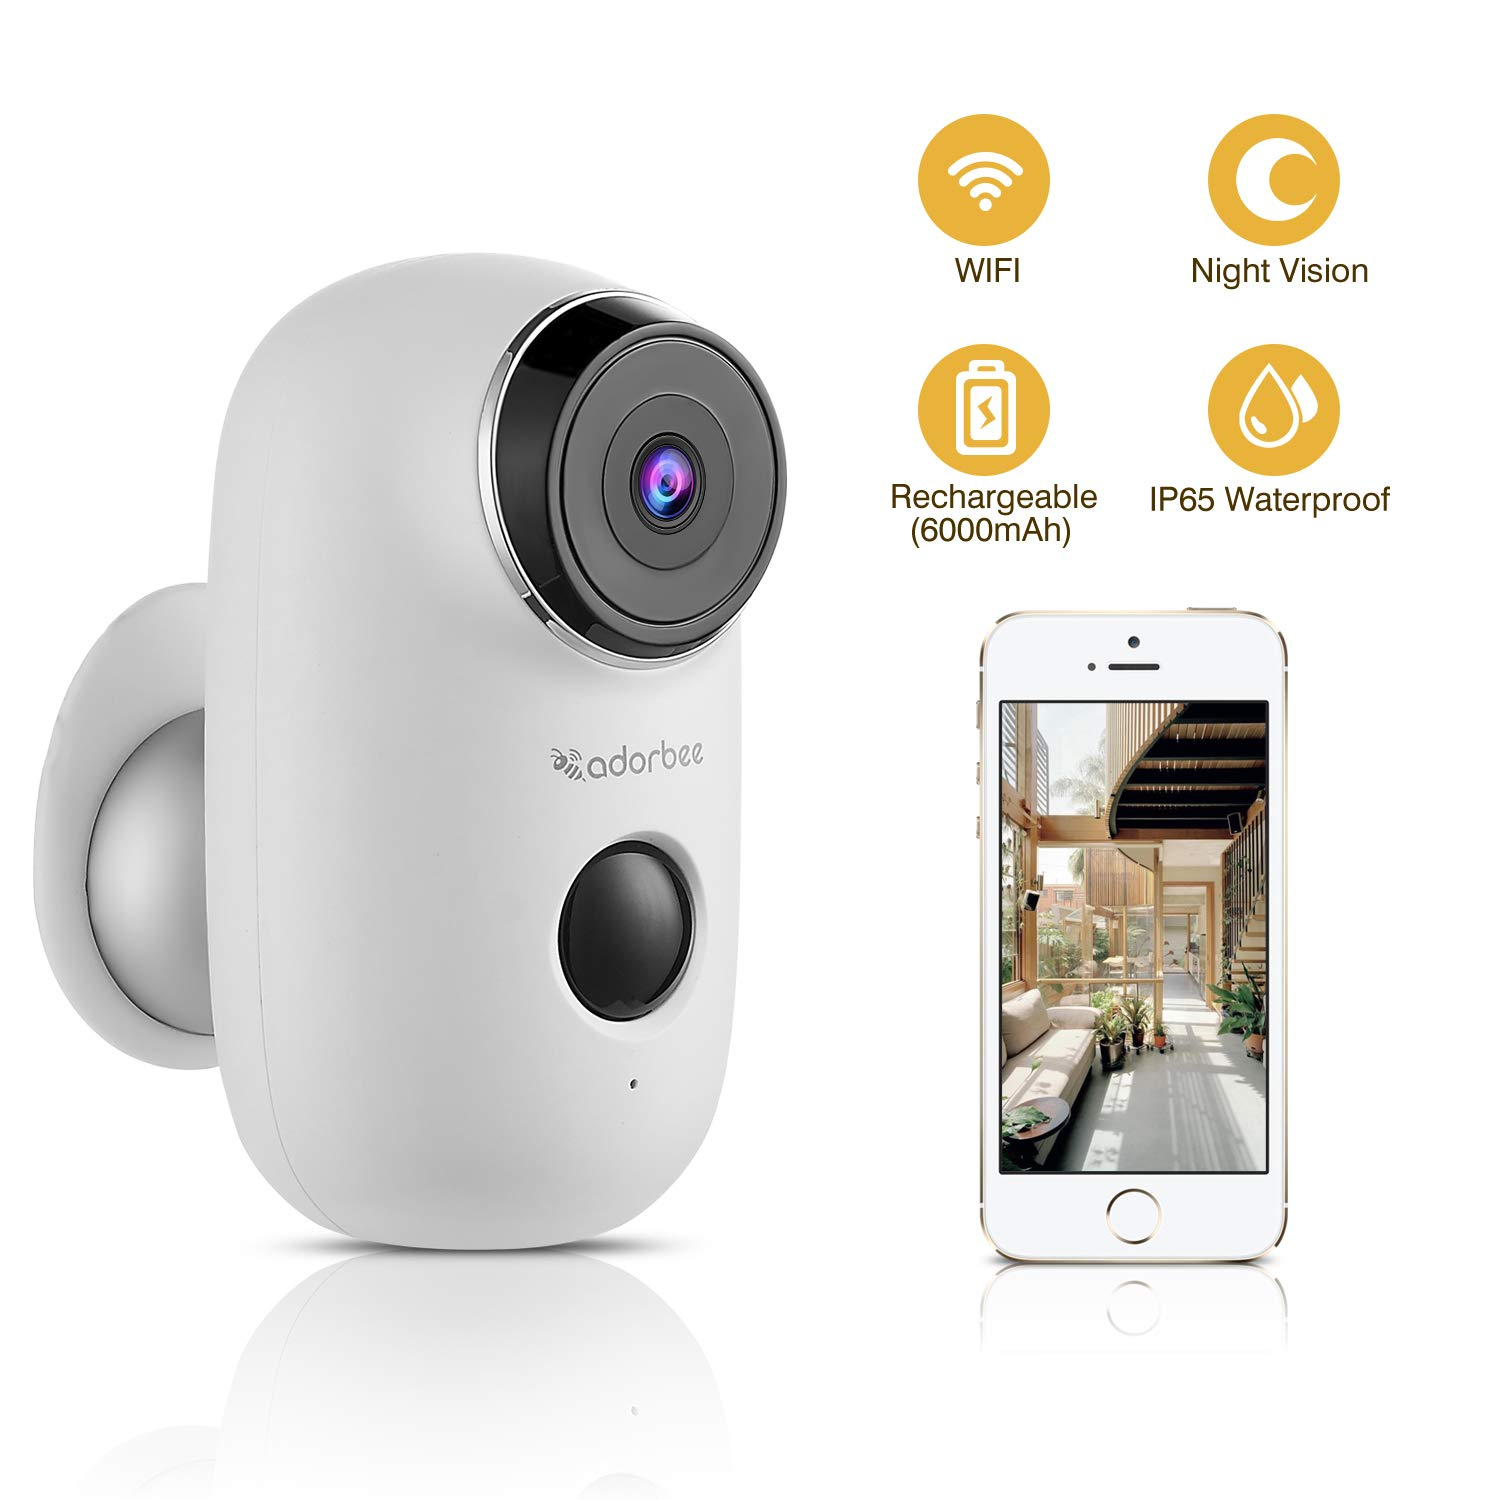 CTVISON Indoor/Outdoor Battery Powered Security Camera,Wireless Rechargeable 6000mAh Home Surveillance WIFI Cam,Support 2-Way Audio,Night Vision w/PIR Motion Sensor & SD Slot, CCTV Video House Monitor by CTVISON